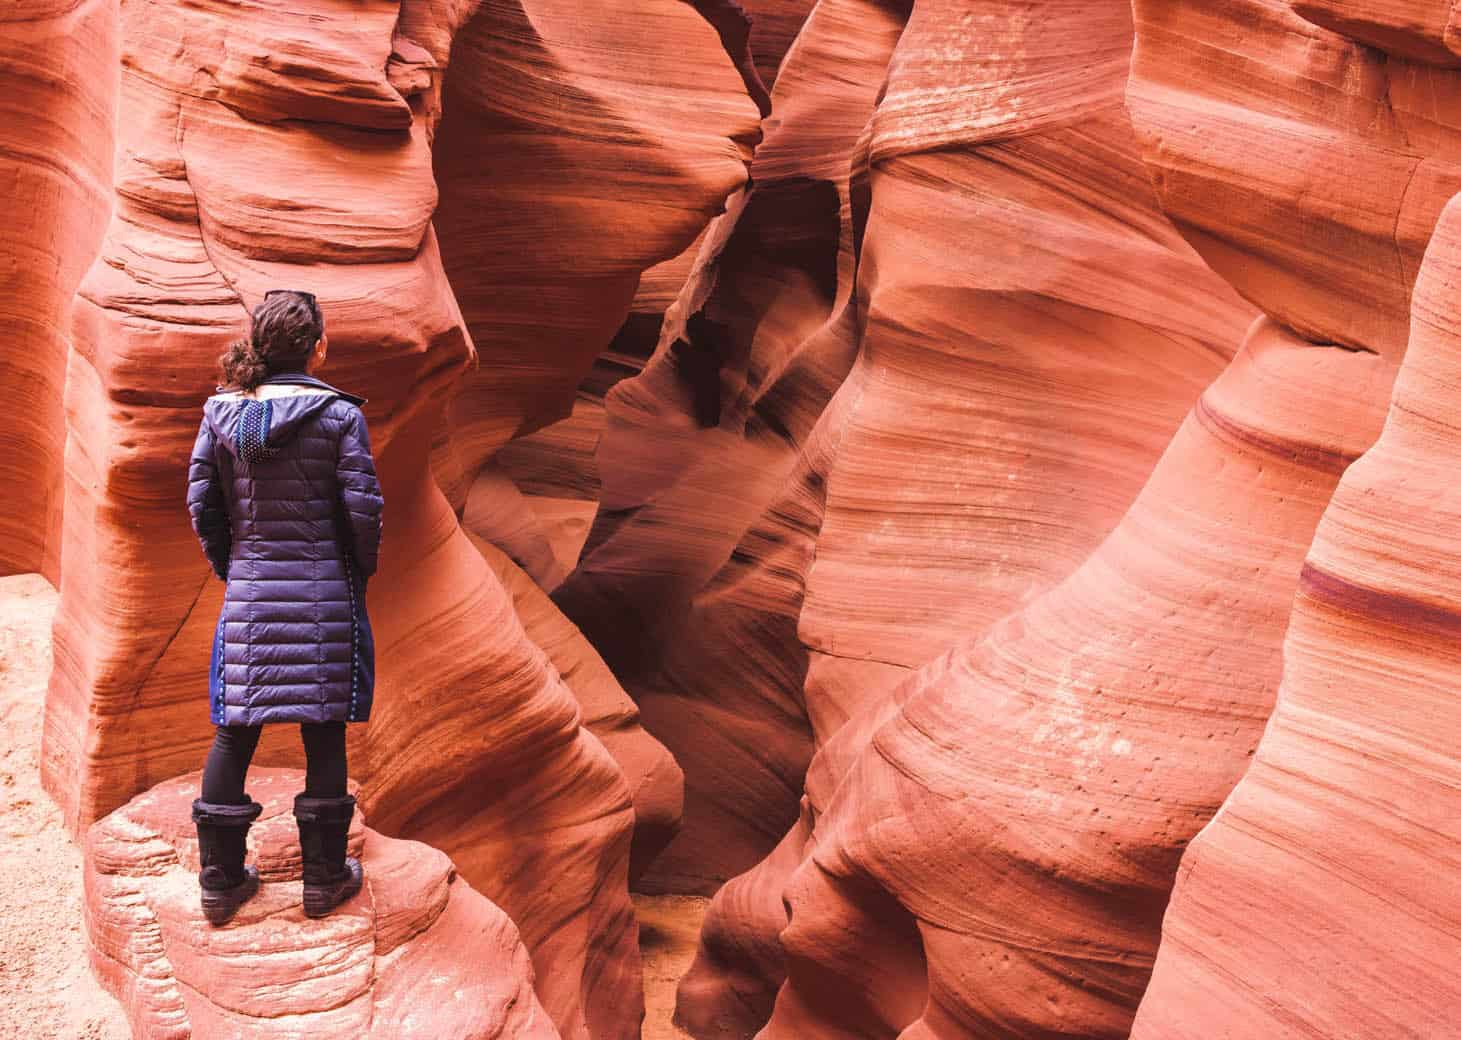 Visiting Antelope Canyon in Winter: Upper, Lower, Or